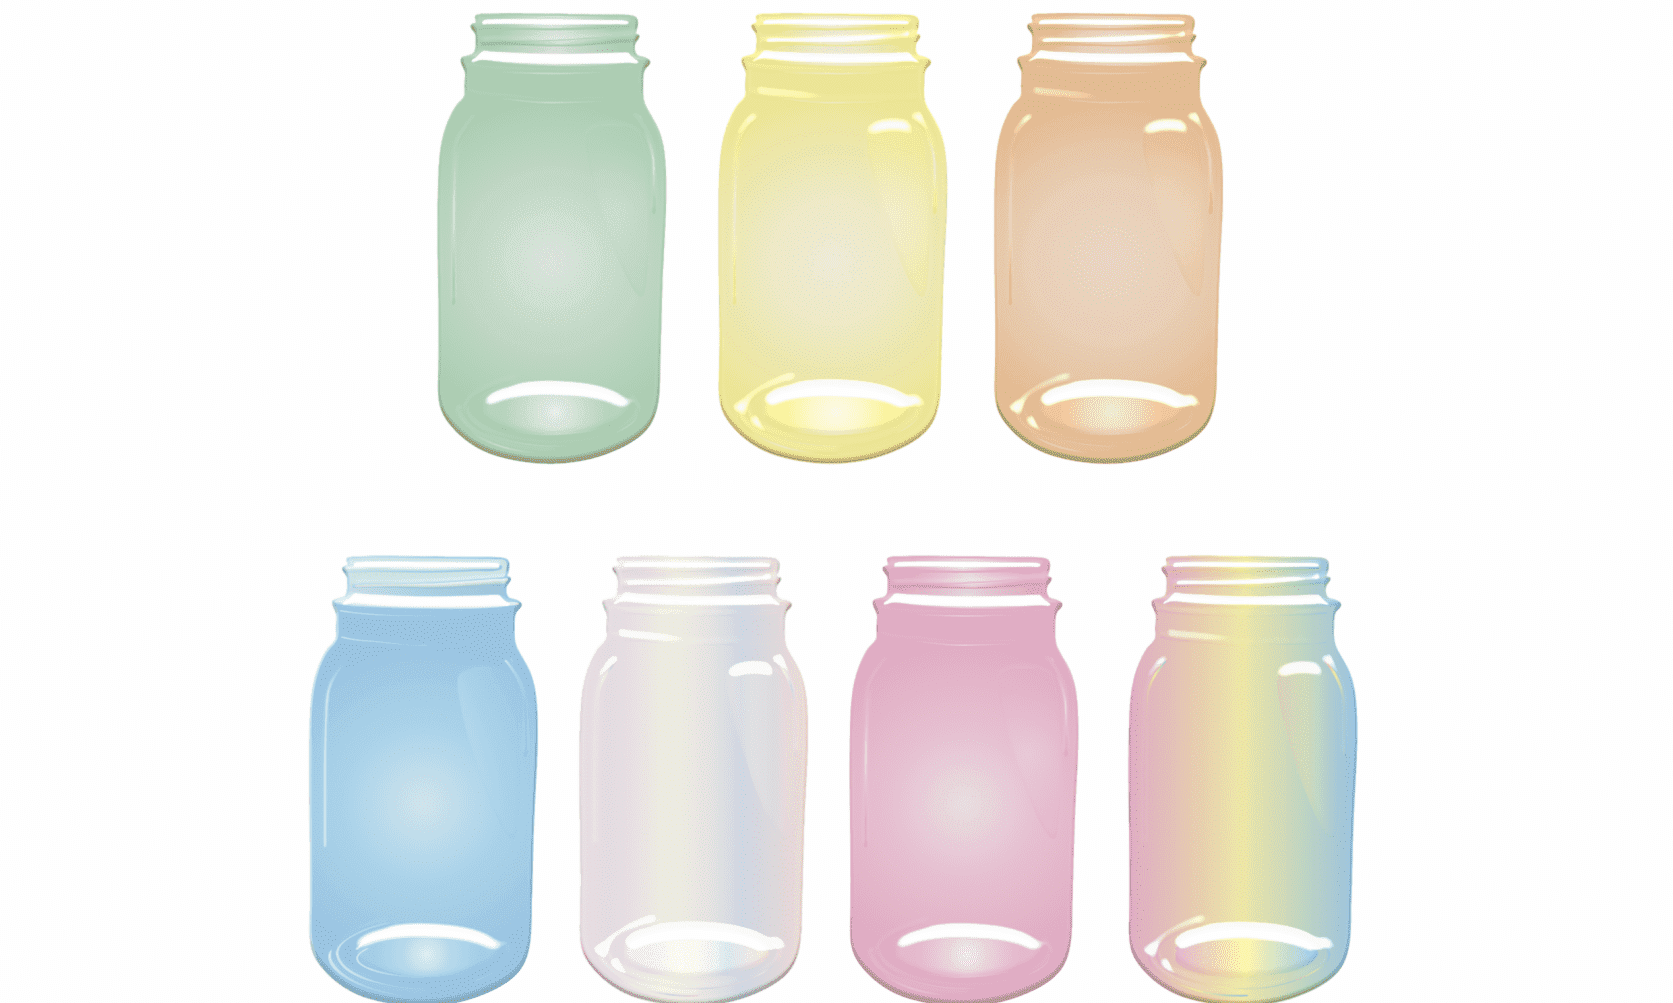 illustrations of mason jars in a variety of colors including green, yellow, orange, pink, and blue